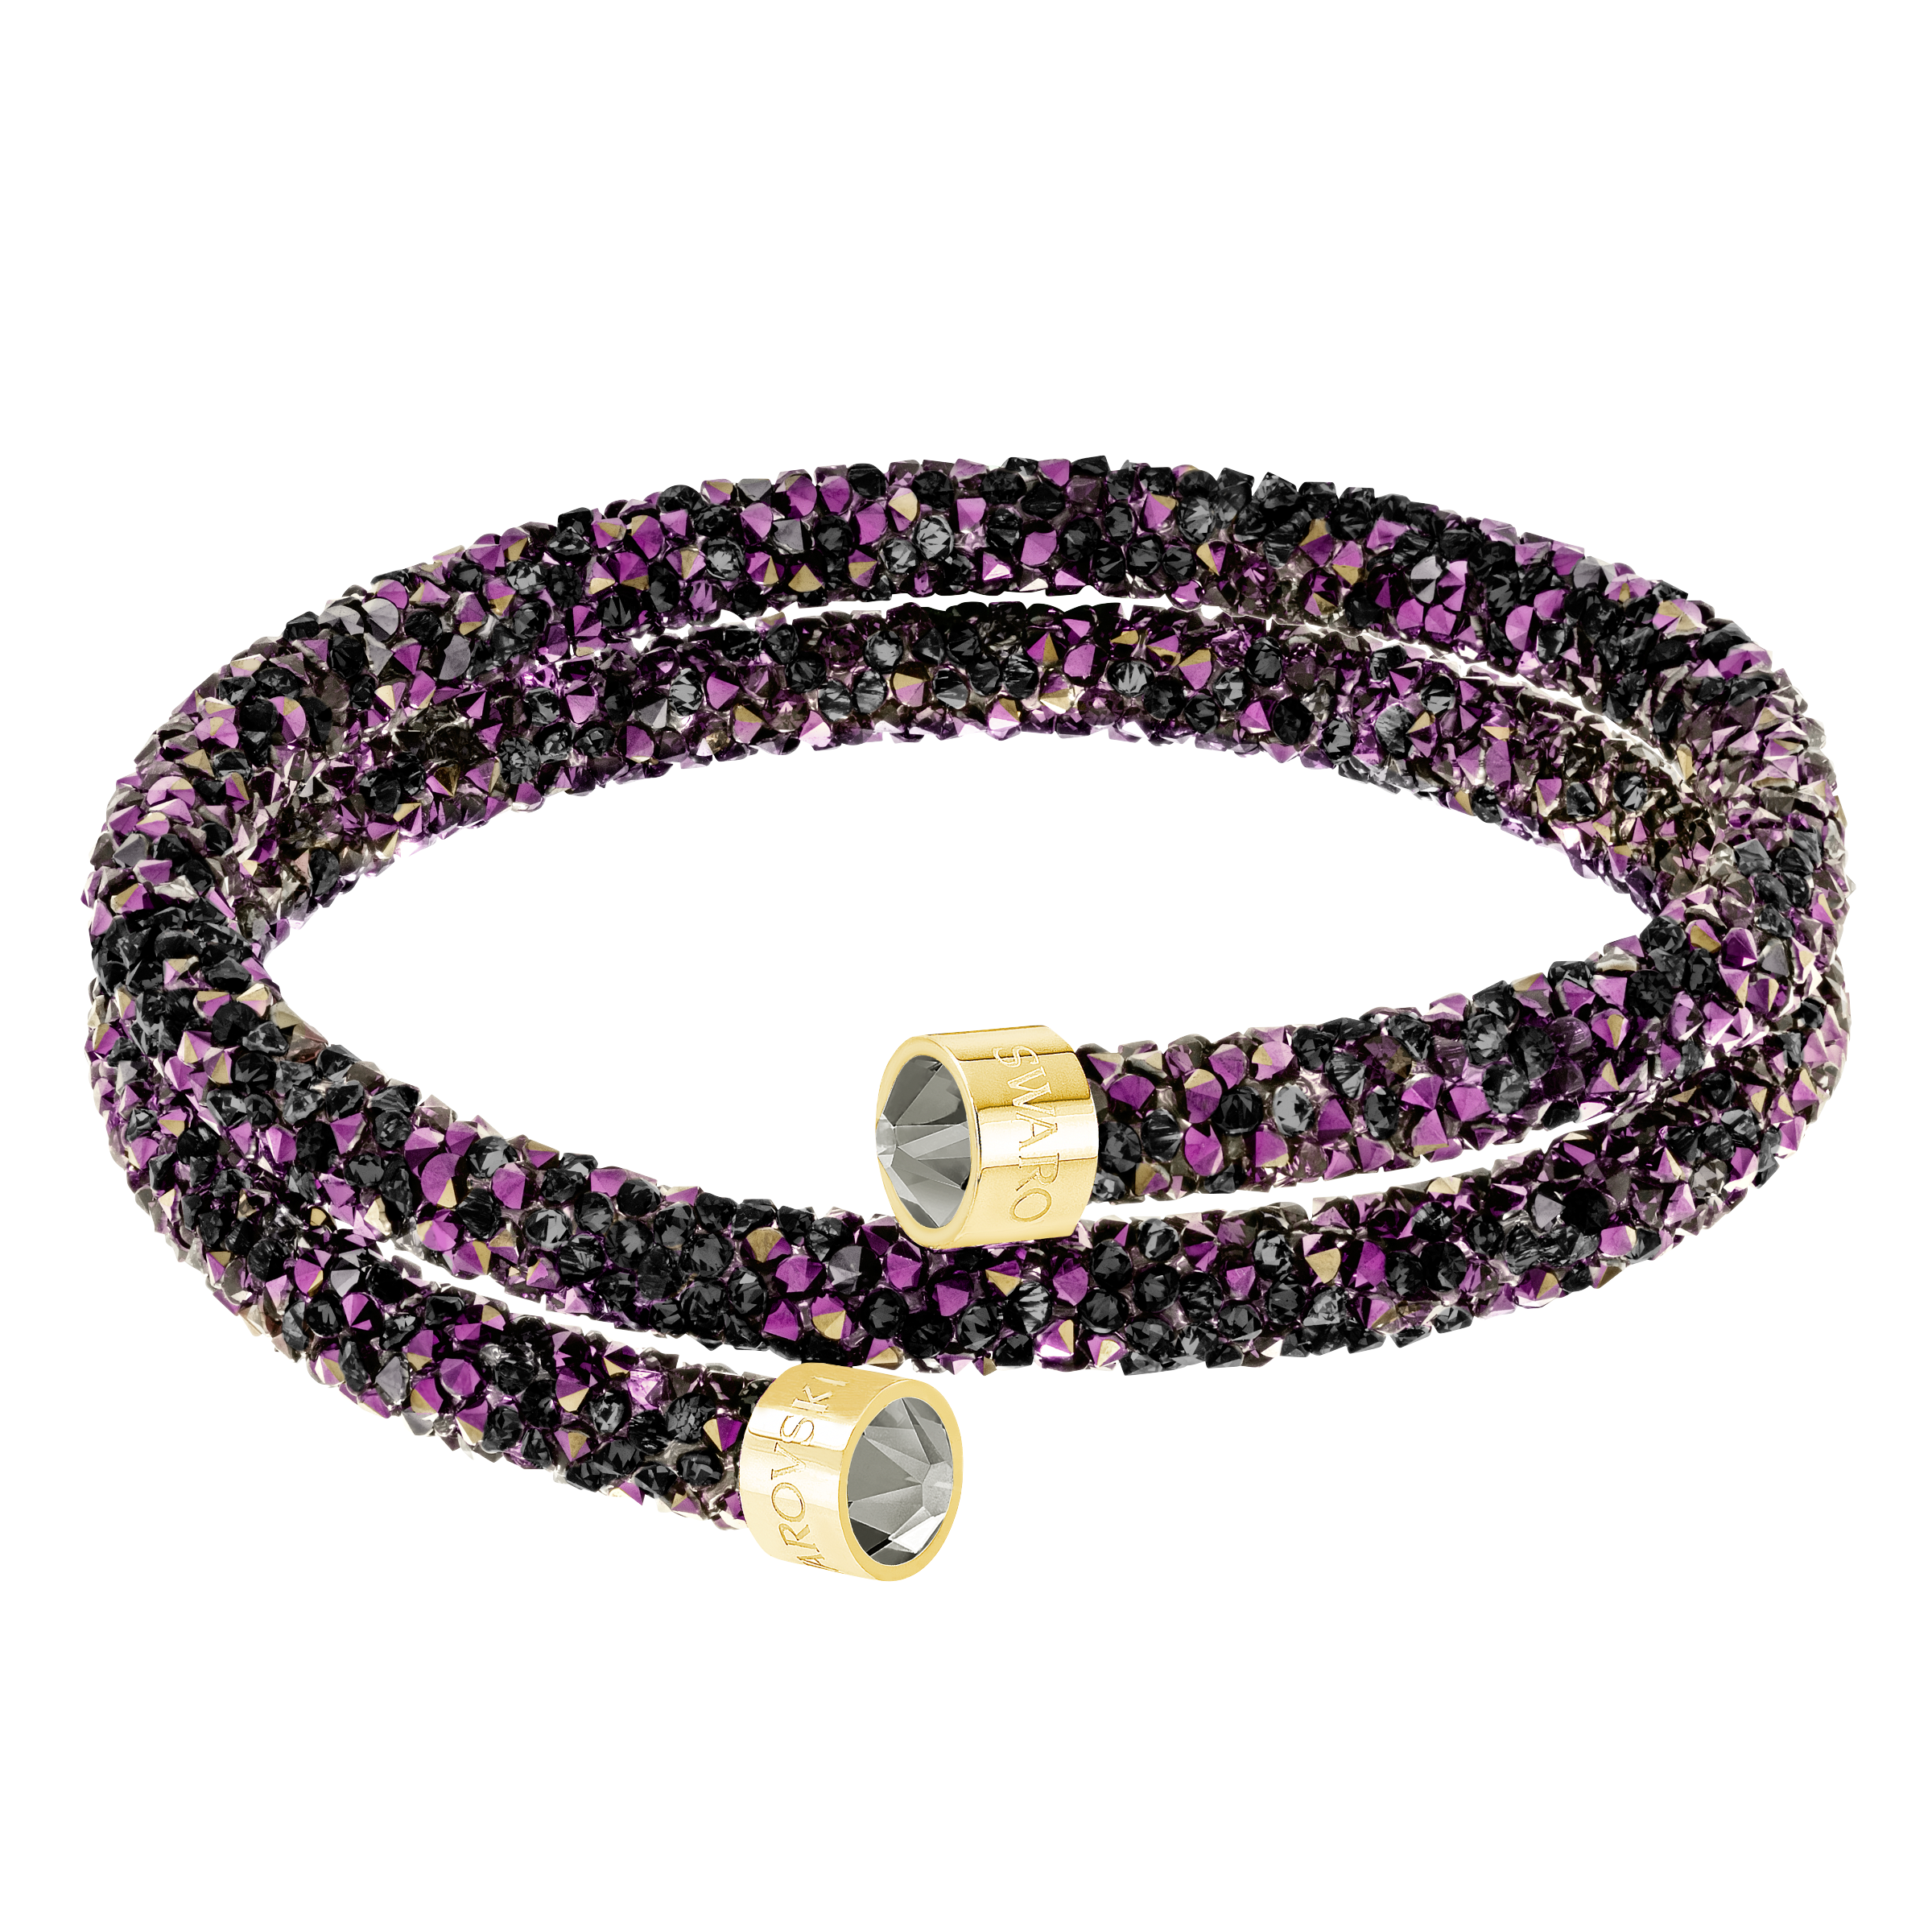 Crystaldust Double Bangle, Multi-colored, Gold-tone plated